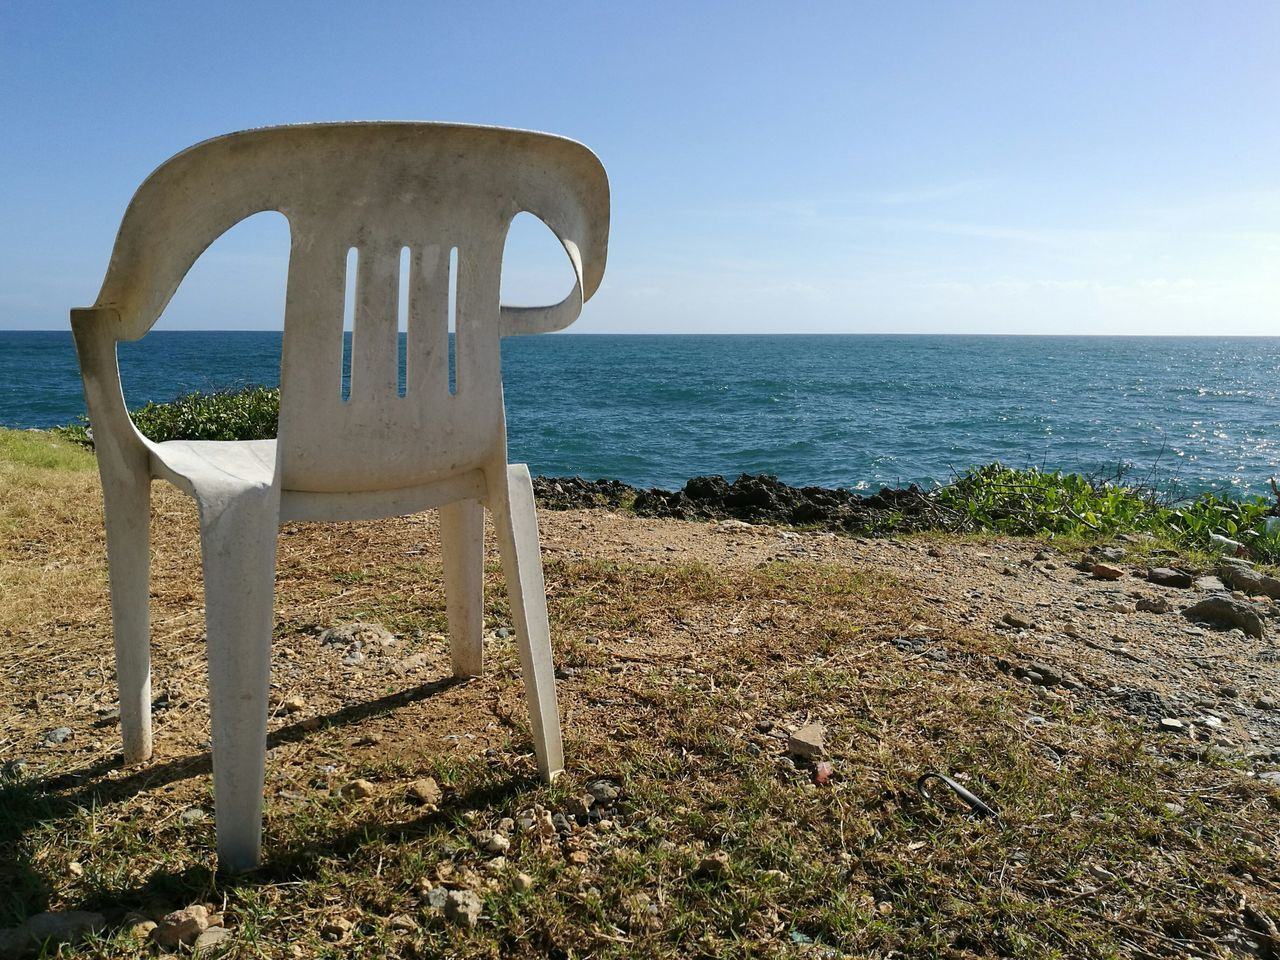 Loner | Sea Horizon Over Water Clear Sky Water Sunlight Blue Travel Destinations Sky Outdoors Shadow Nature Scenics Beauty In Nature No People HuaweiP9 Huaweiphotography Chair Chairs Chairs Seats Chair In Garden Chairs In Nature Chairs Perspective Chairs Outside Chairstories